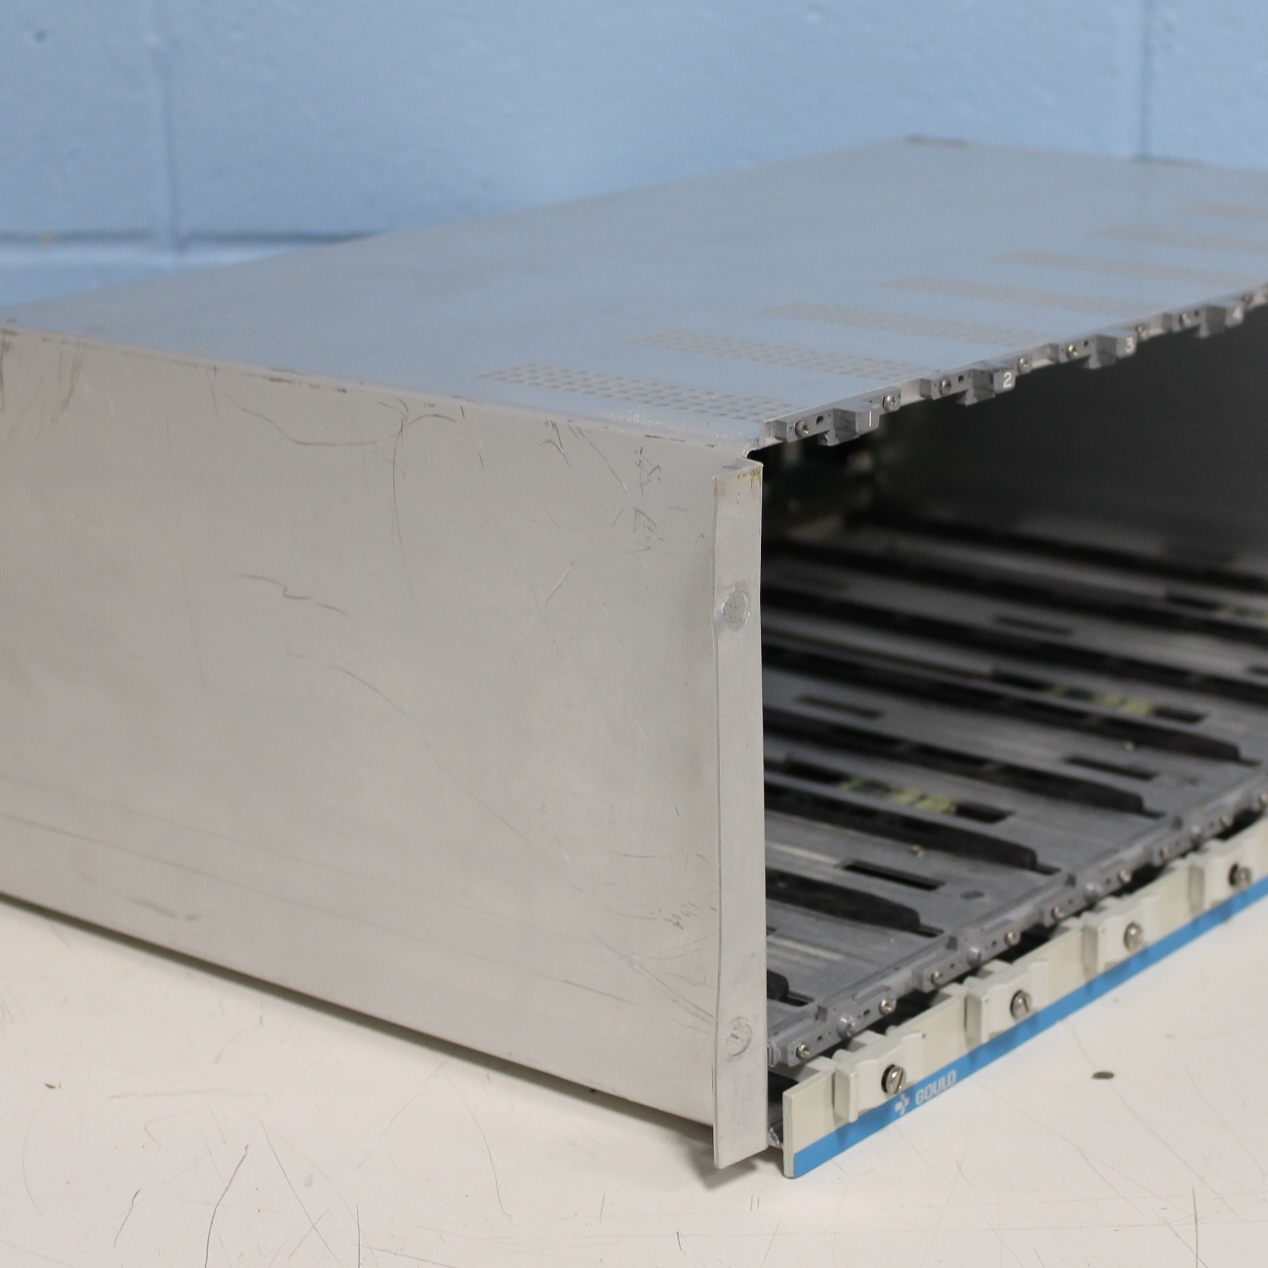 Gould 5900 Signal Conditioner Cage Image